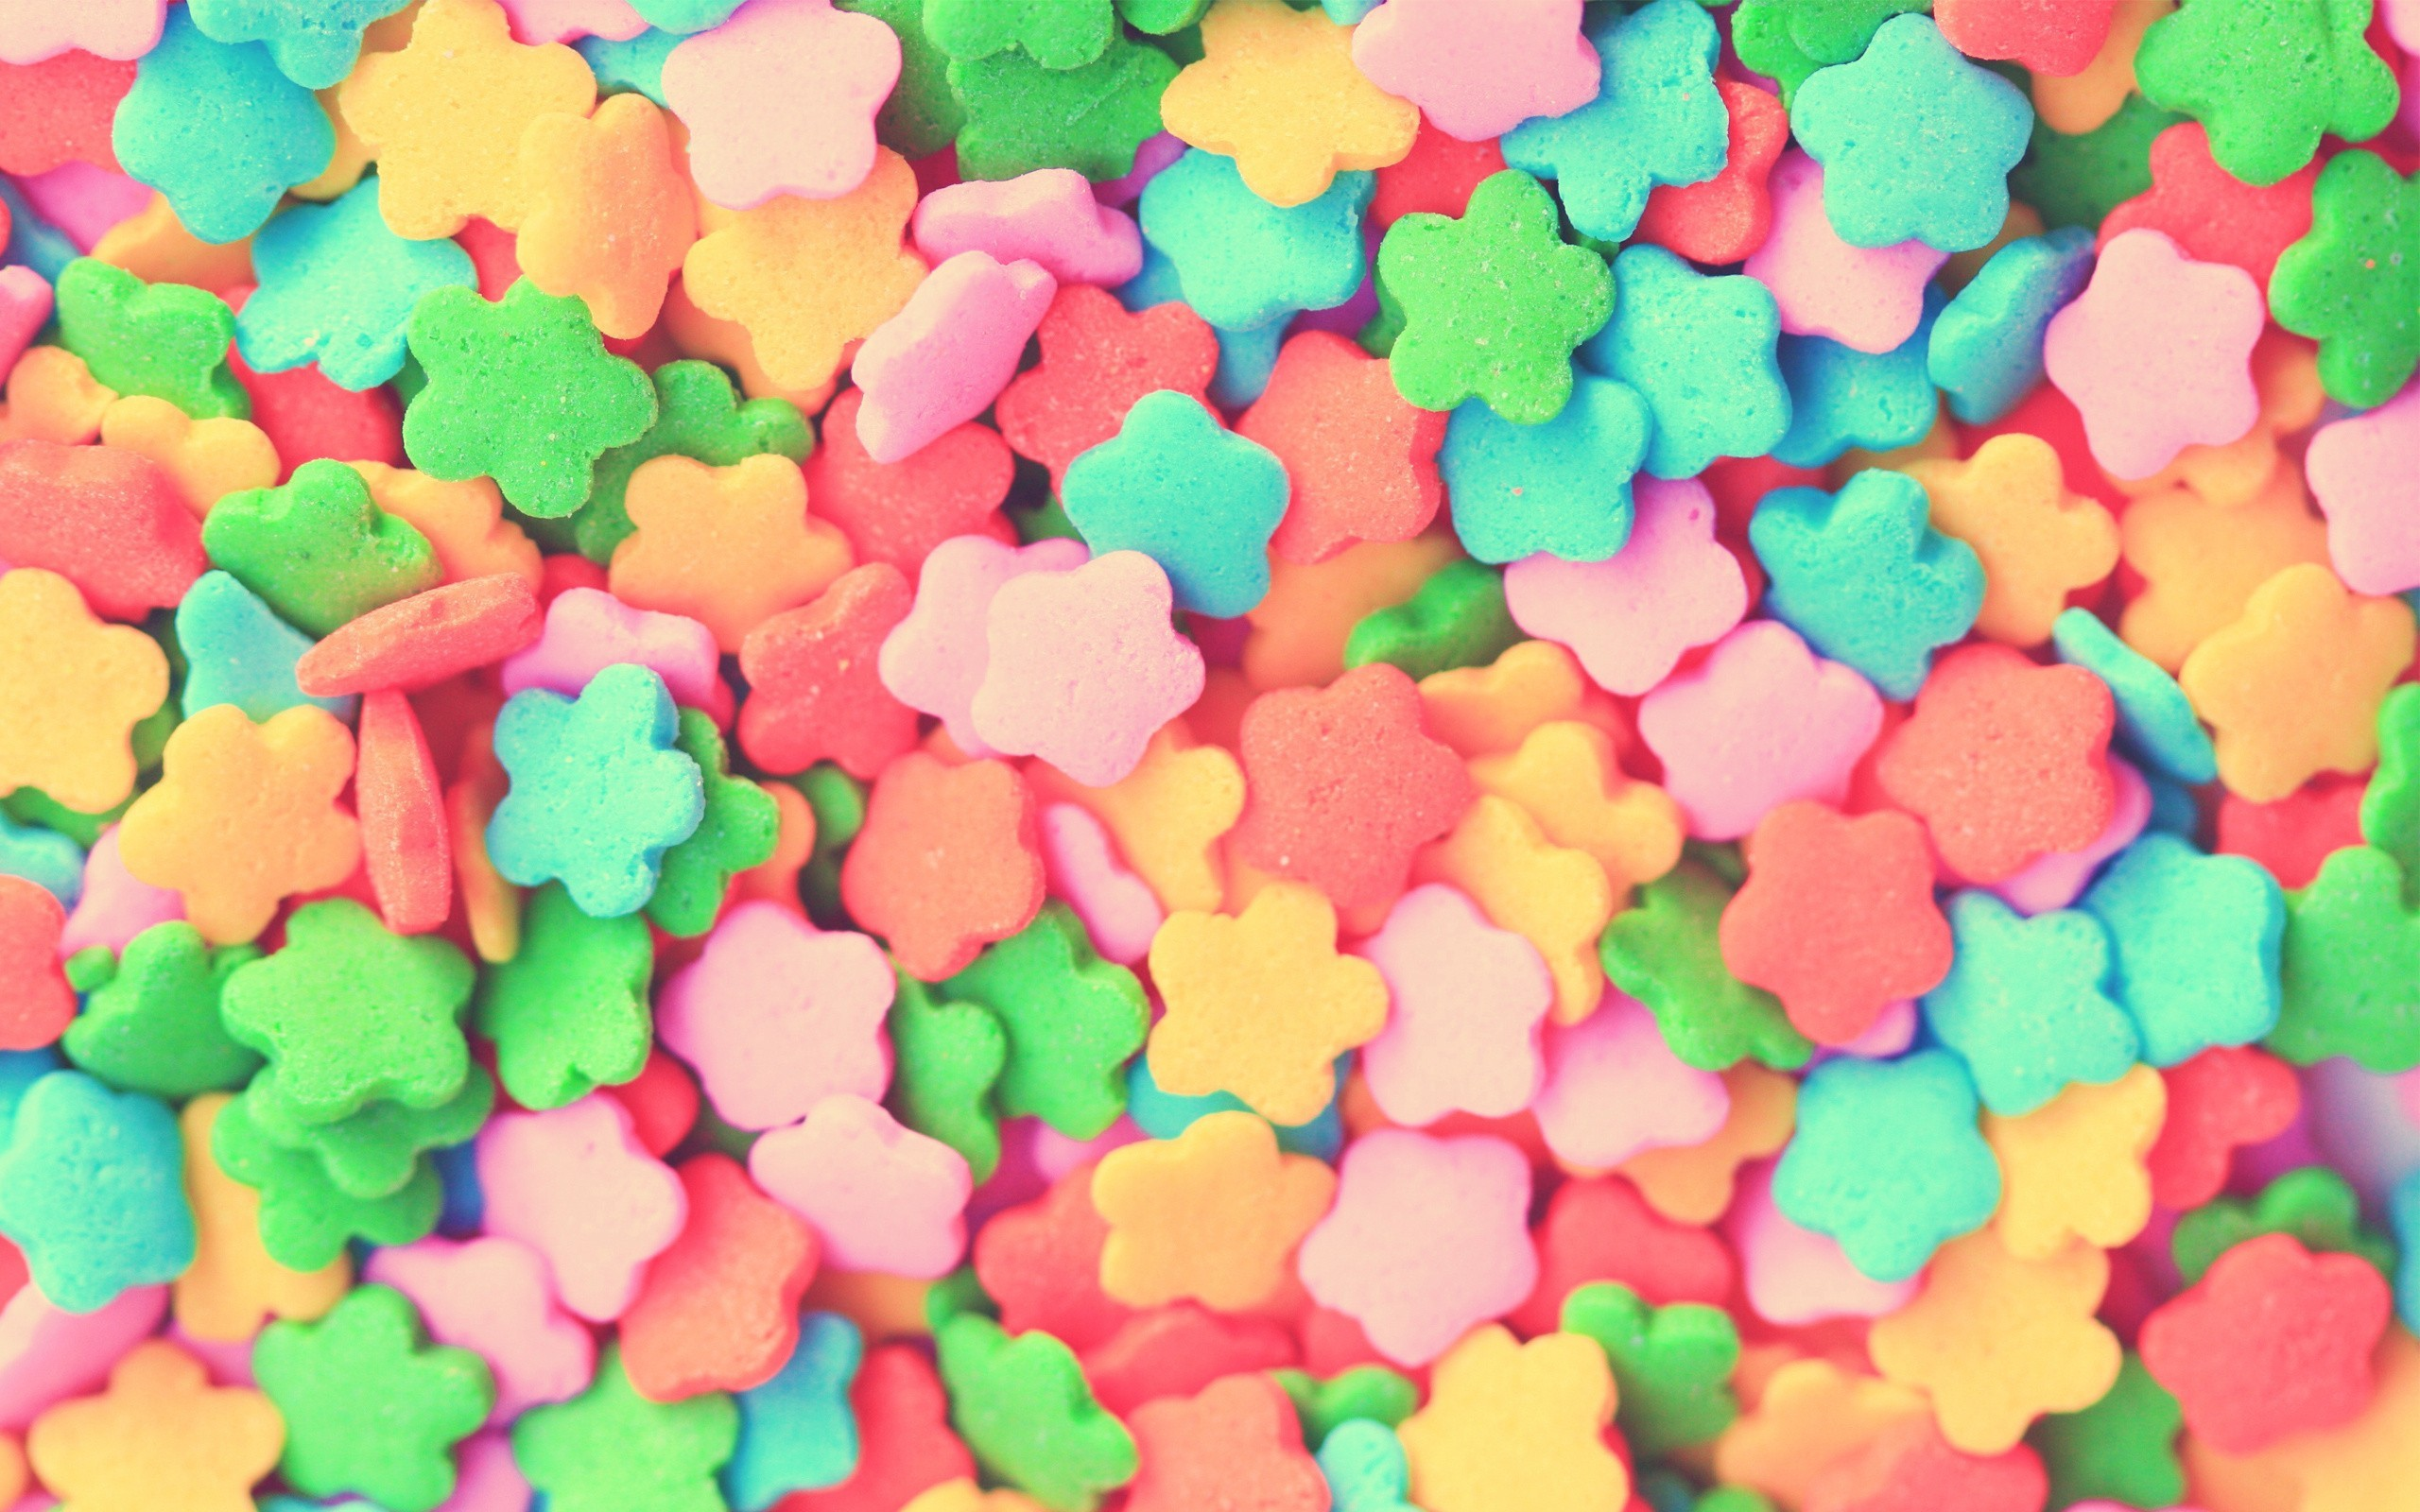 2560x1600 15 Wonderful HD Candy Wallpapers